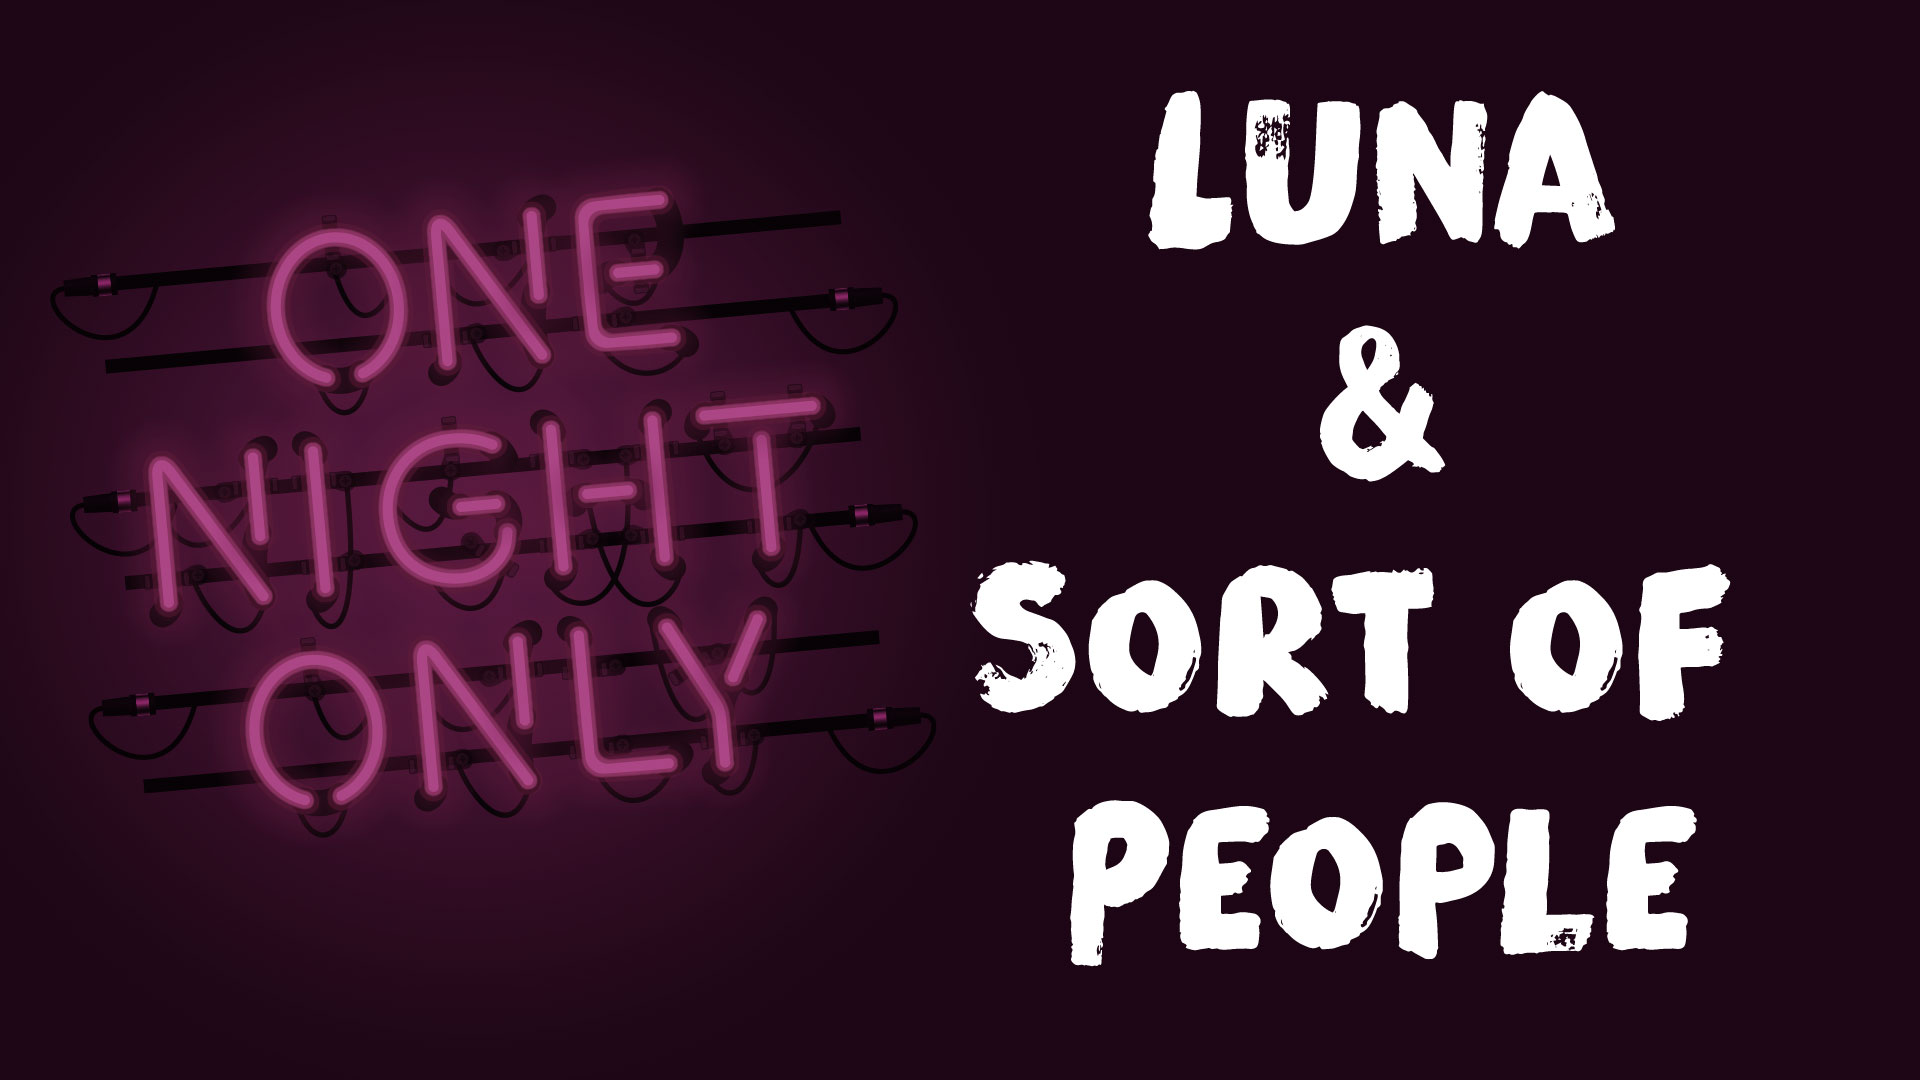 One Night Only: Luna & Sort of People